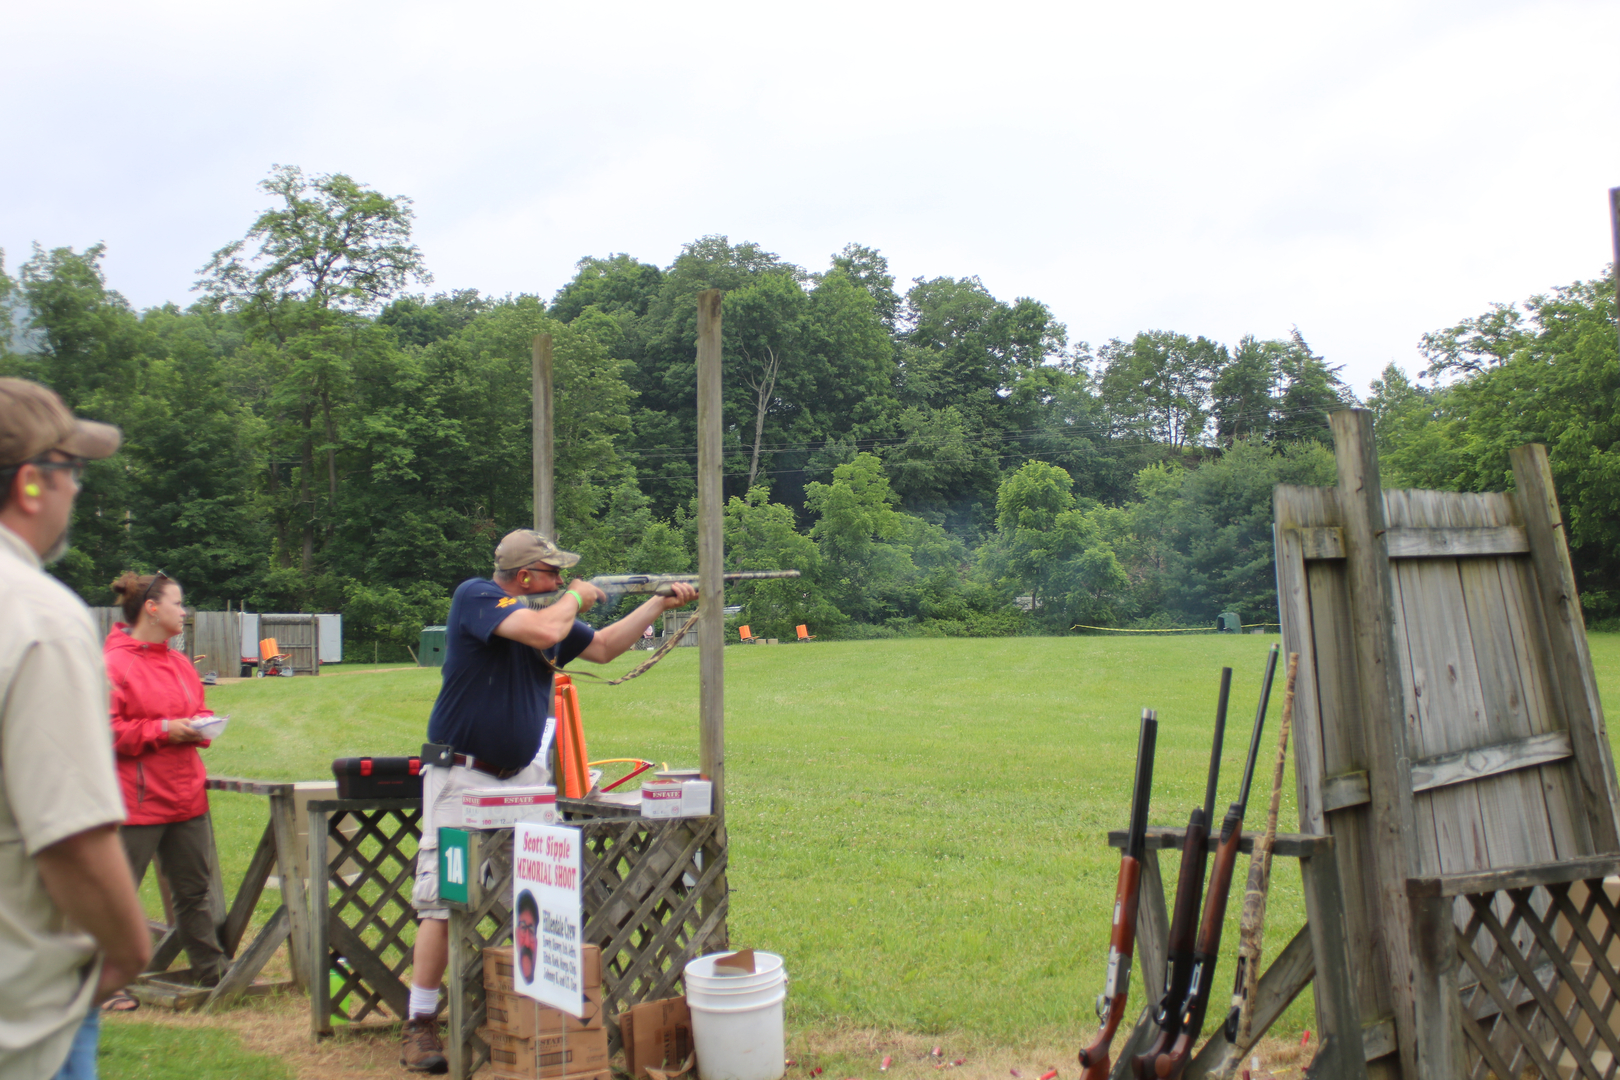 Clay shoot event for suicide prevention | WTAJ